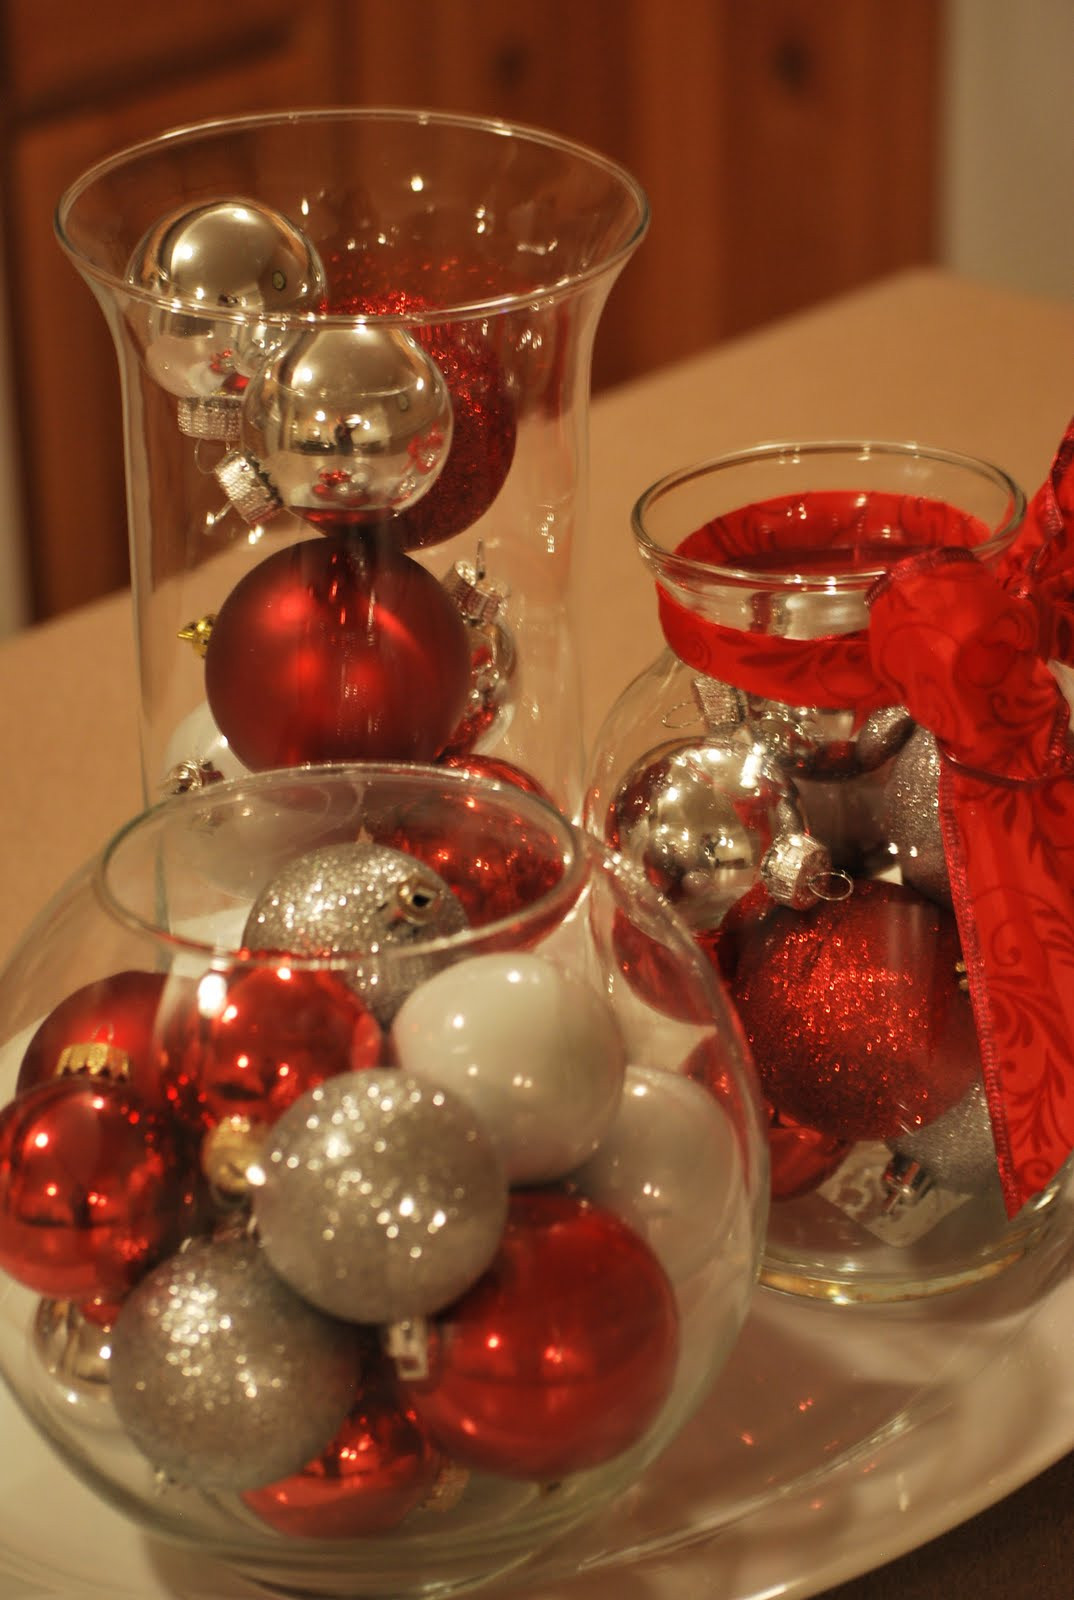 Company Christmas Party Ideas On A Budget  cheap christmas centerpieces – Gravetics